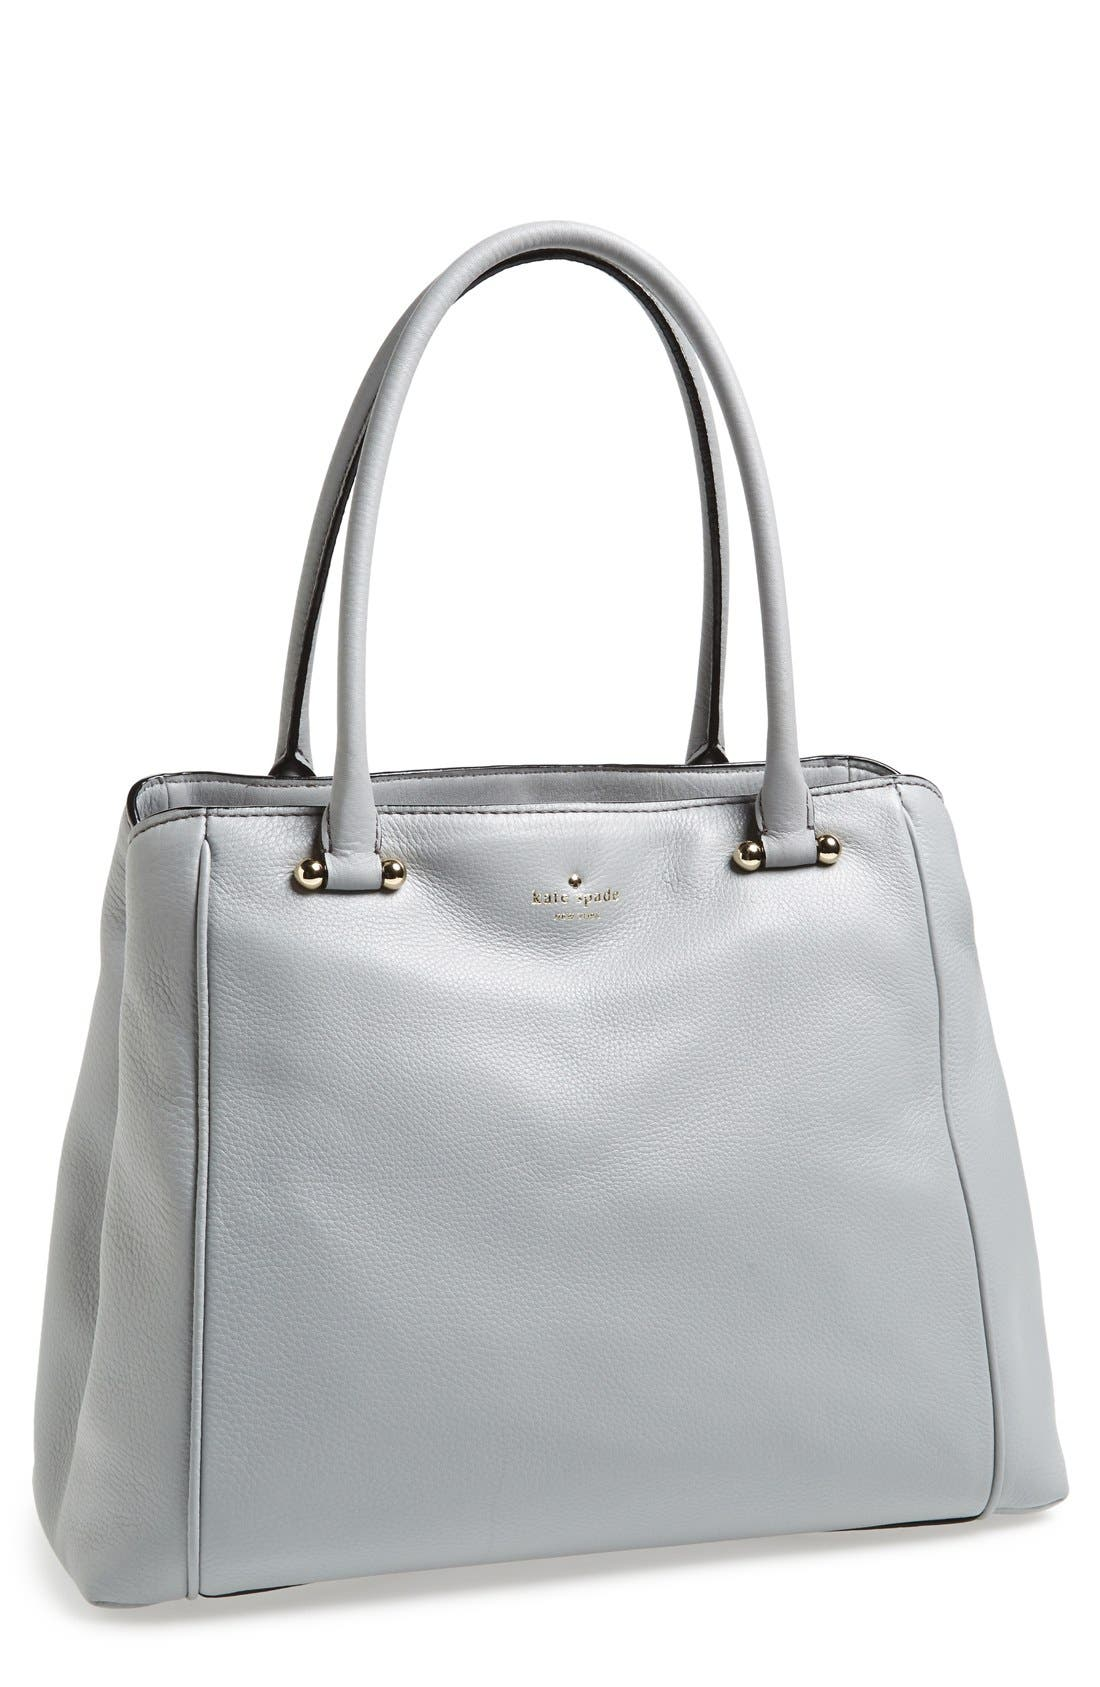 Main Image - kate spade new york 'reis' leather tote